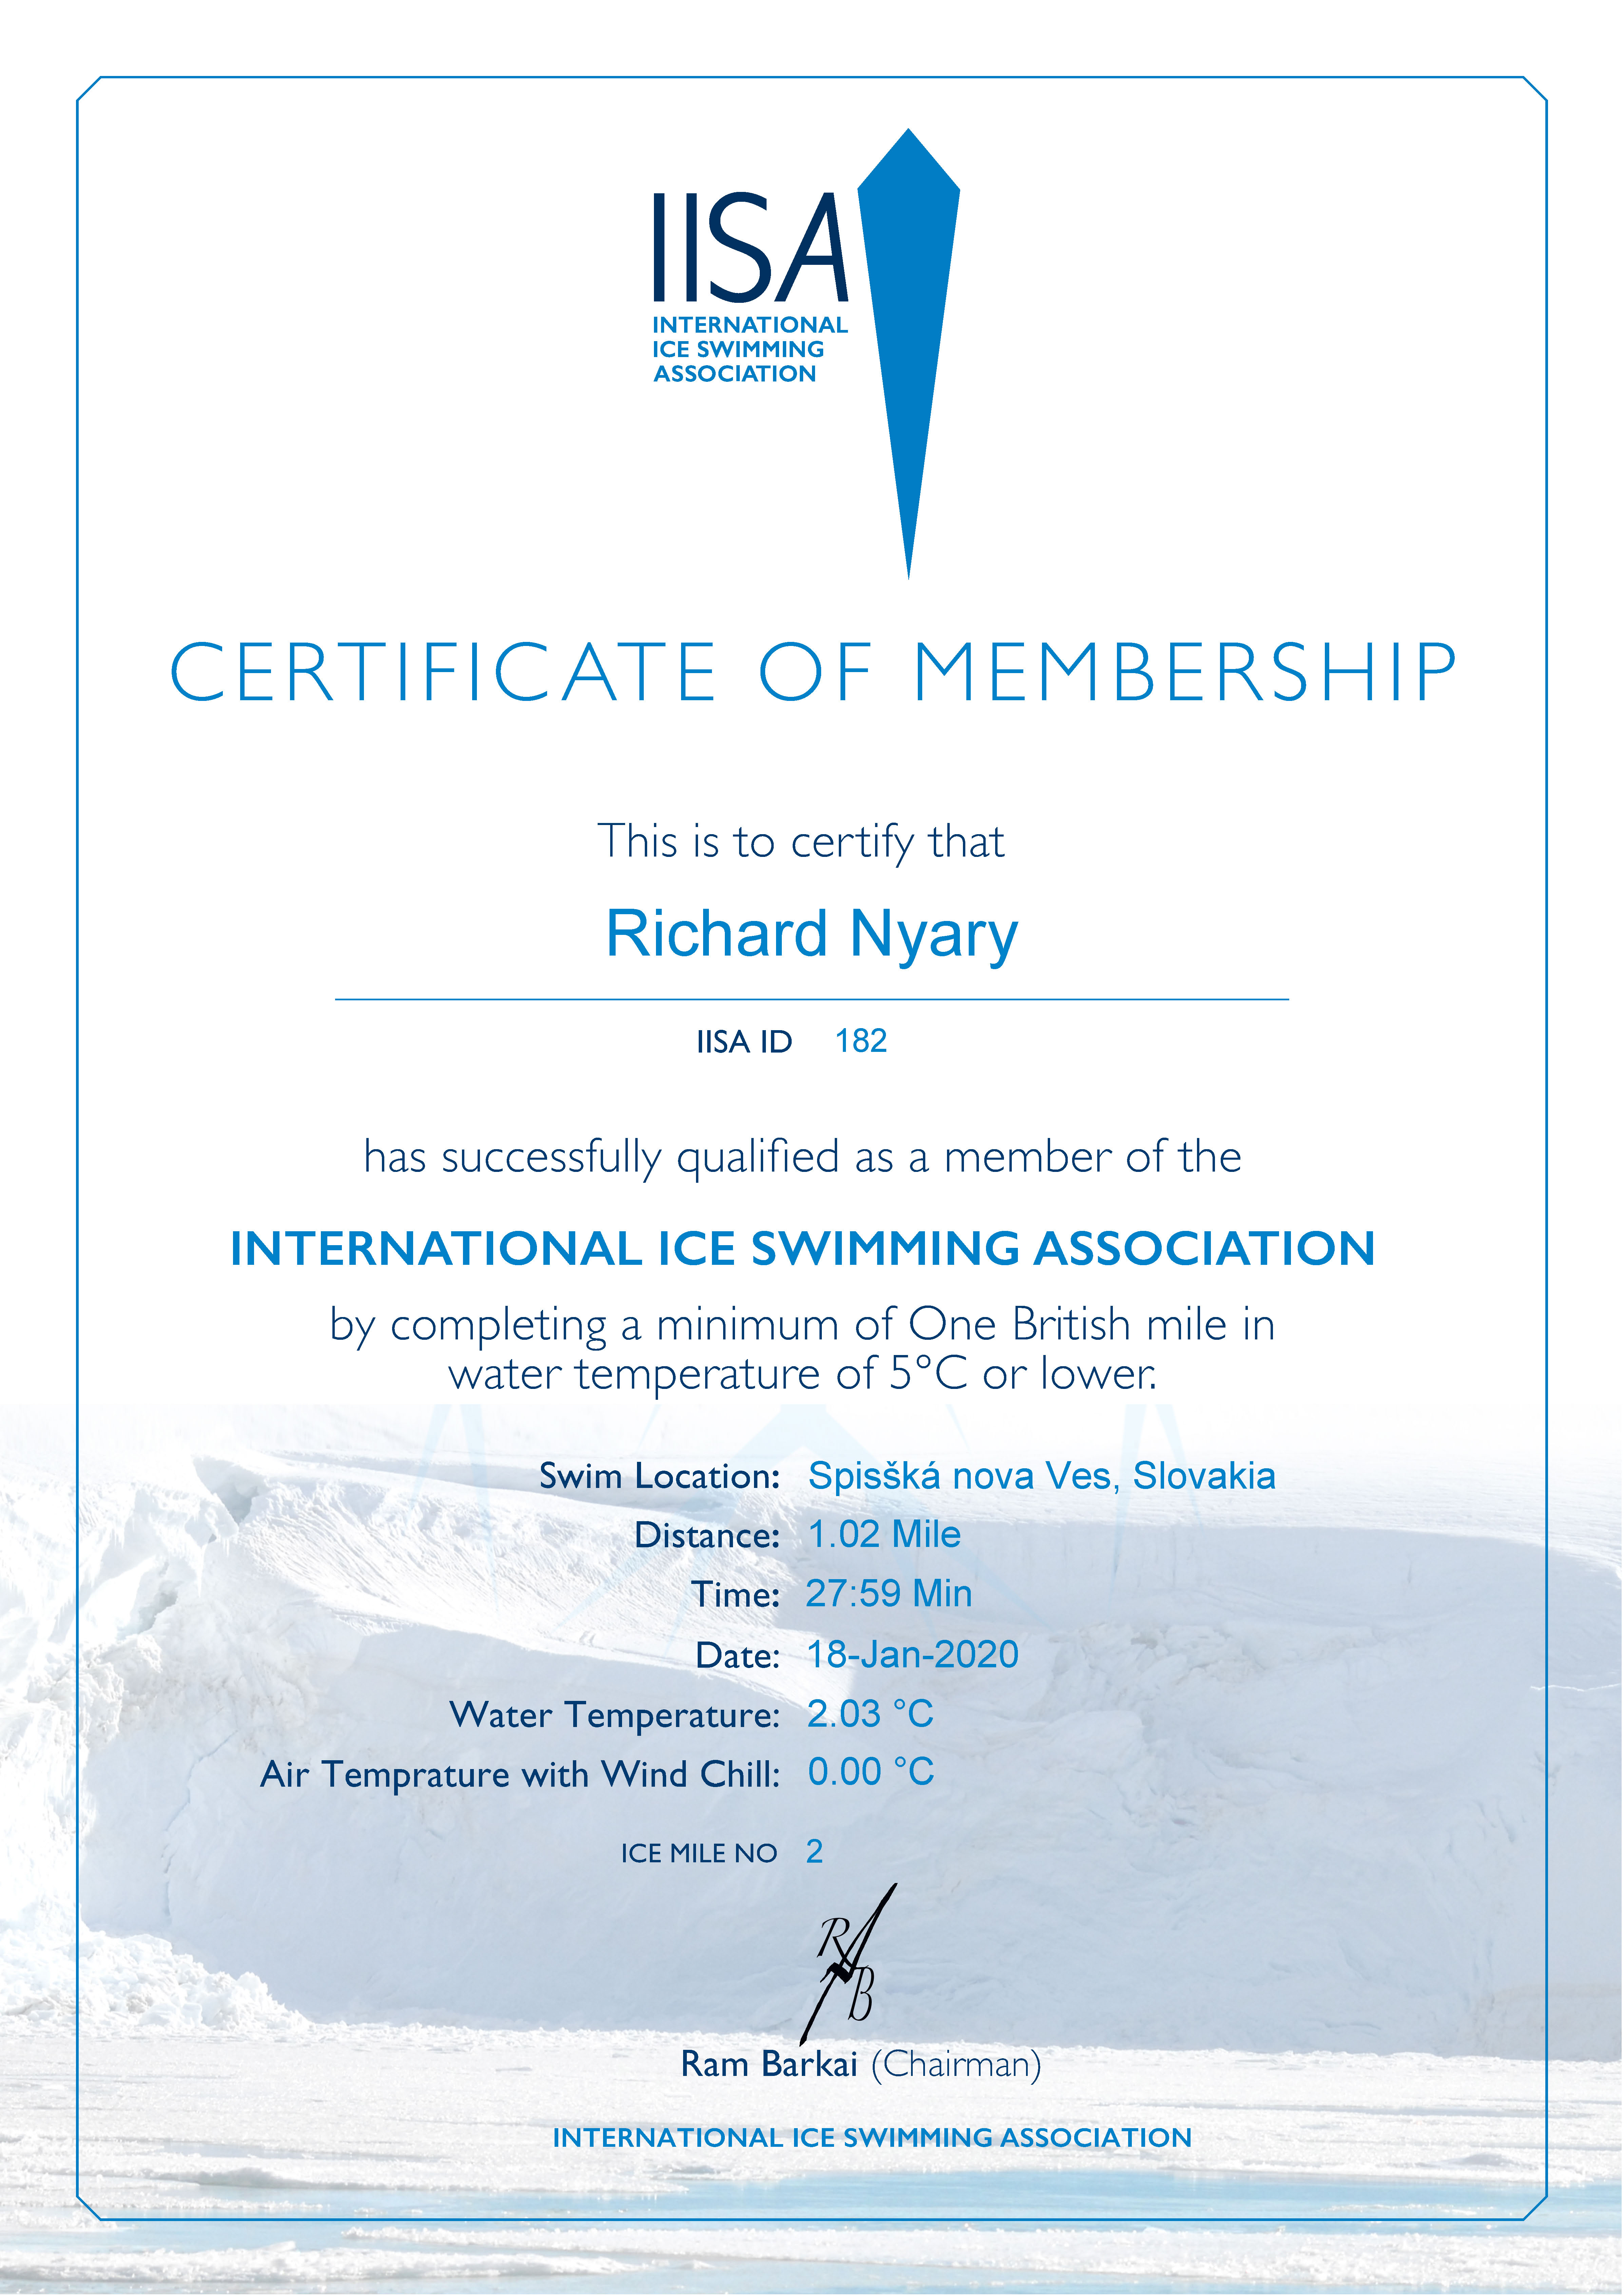 Ice Mile Certificate - Richard Nyary